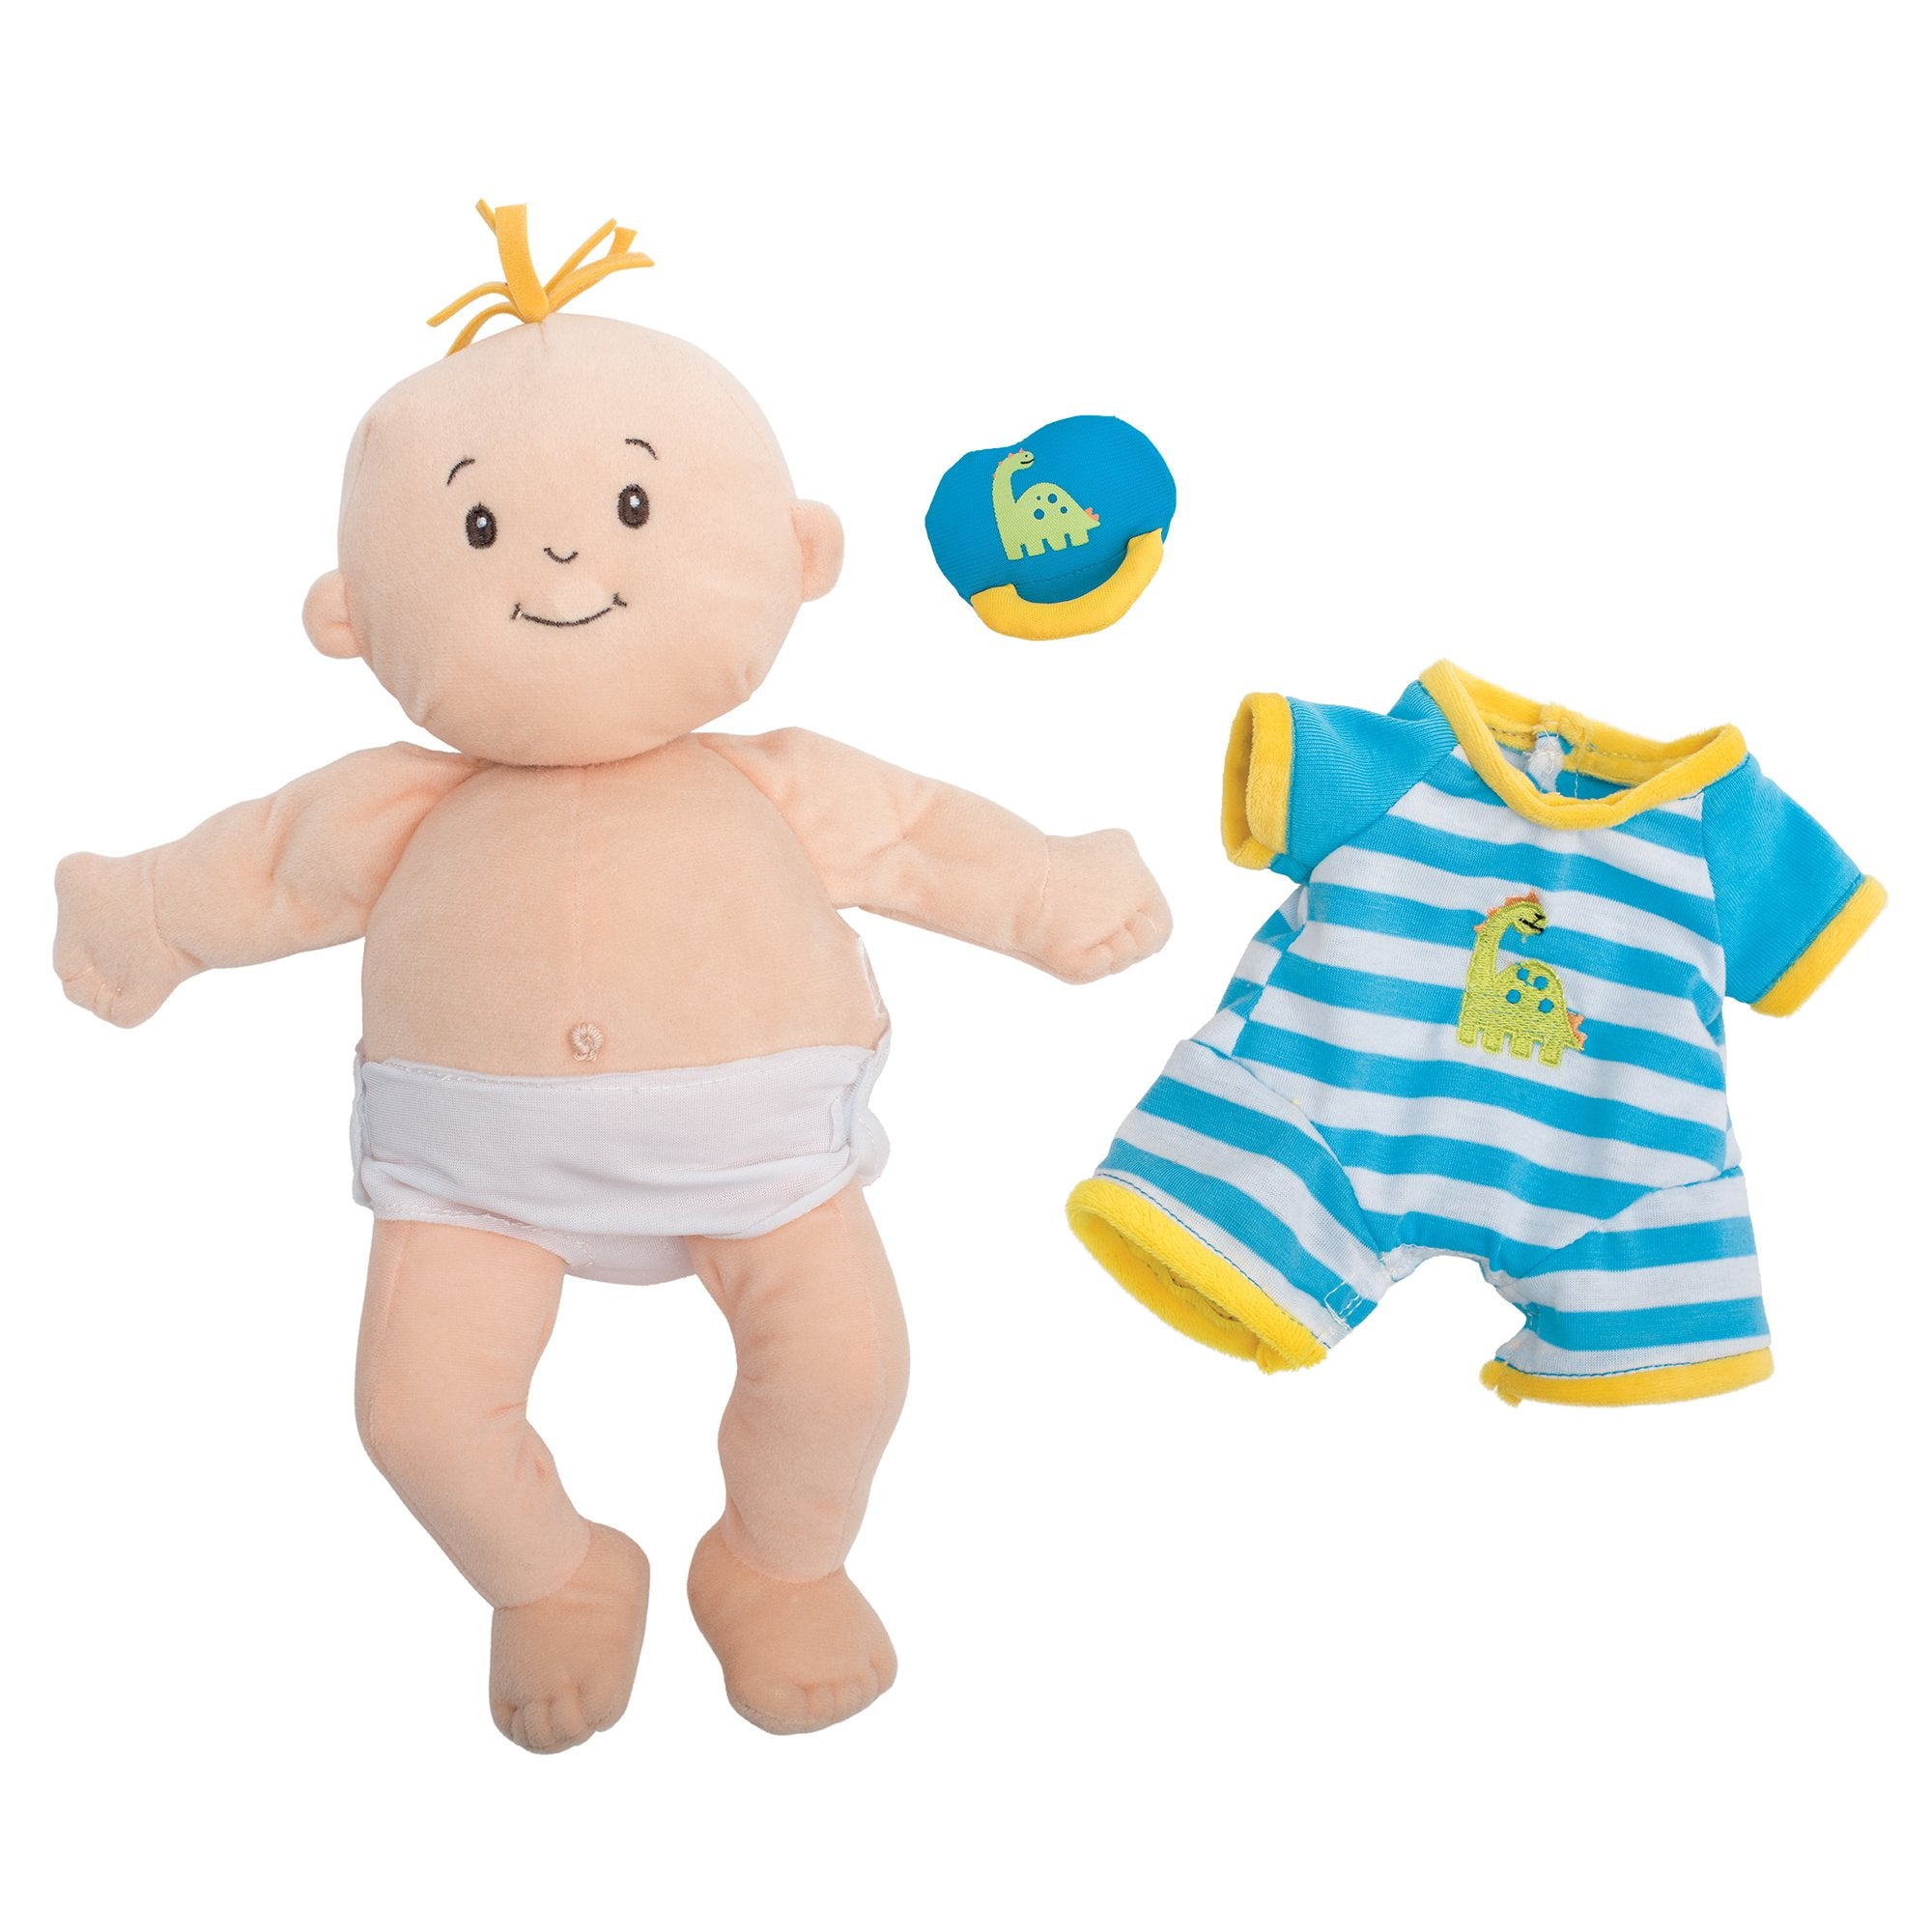 Manhattan Toy Baby Stella Boy Soft First Baby Doll for Ages 1 Year and Up, 15""